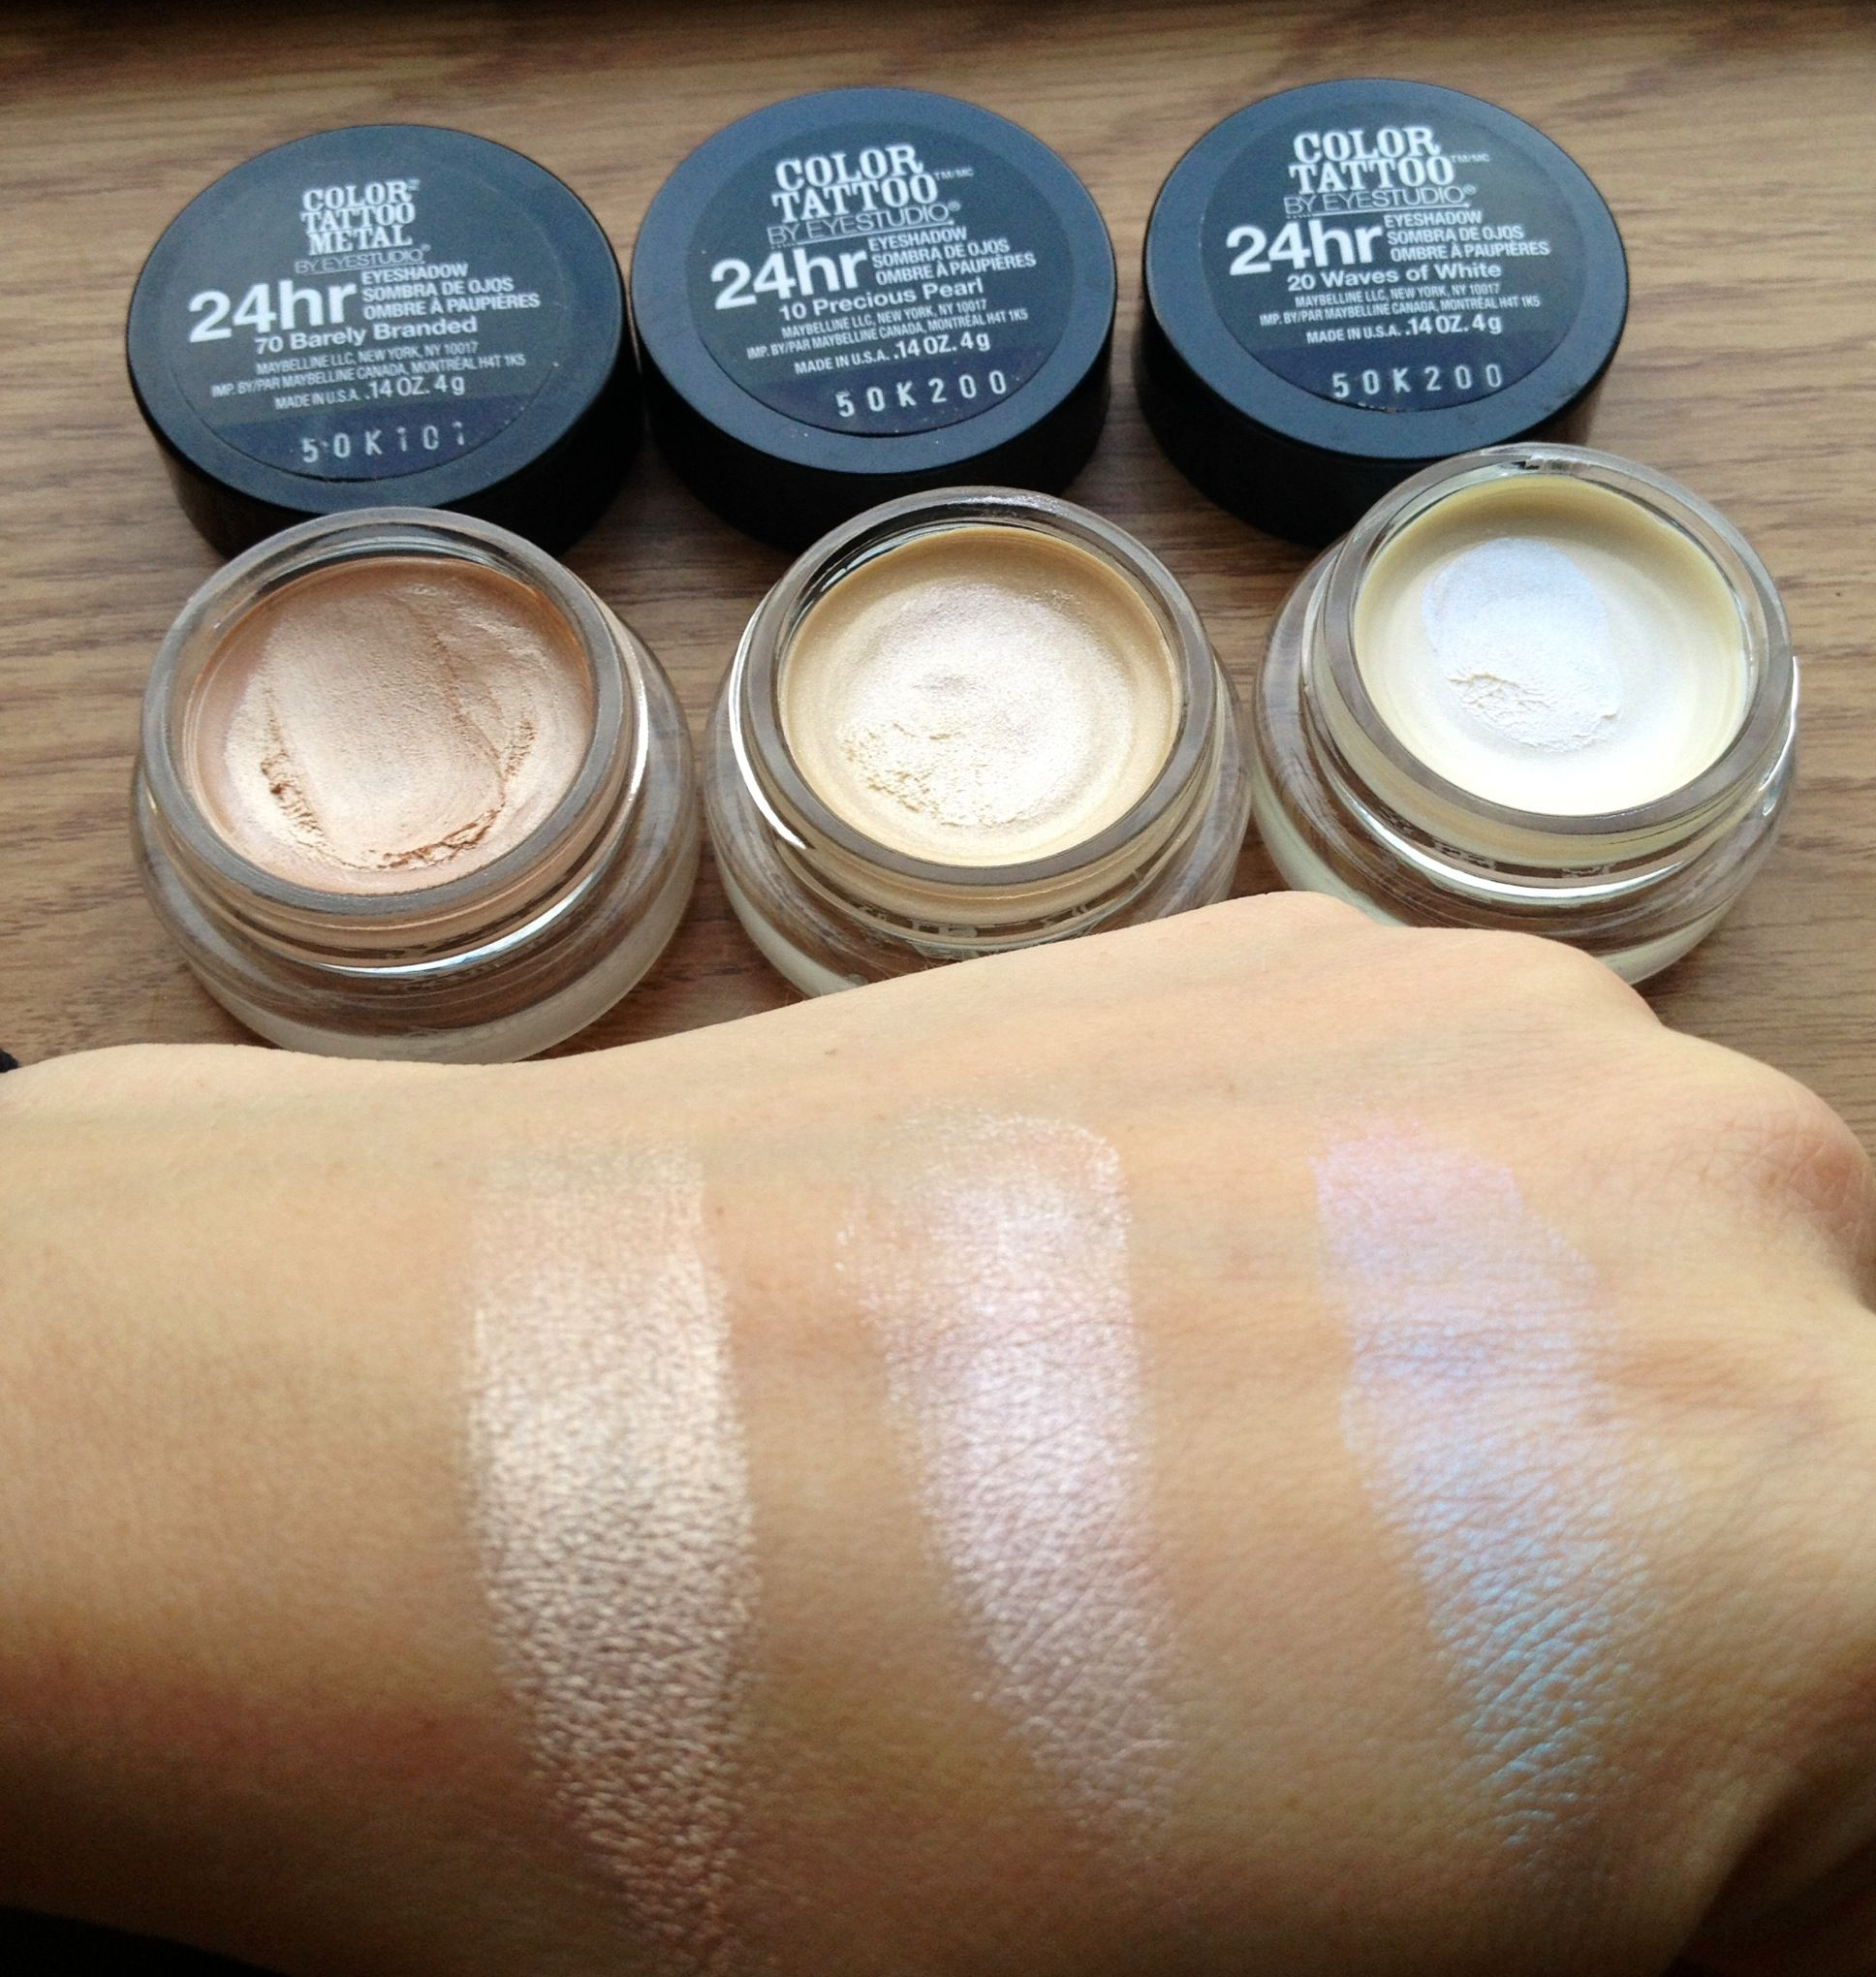 Pin By Tabitha Gandee On Hair Makeup Nails Maybelline Eye Color Tattoo Hair And Nails